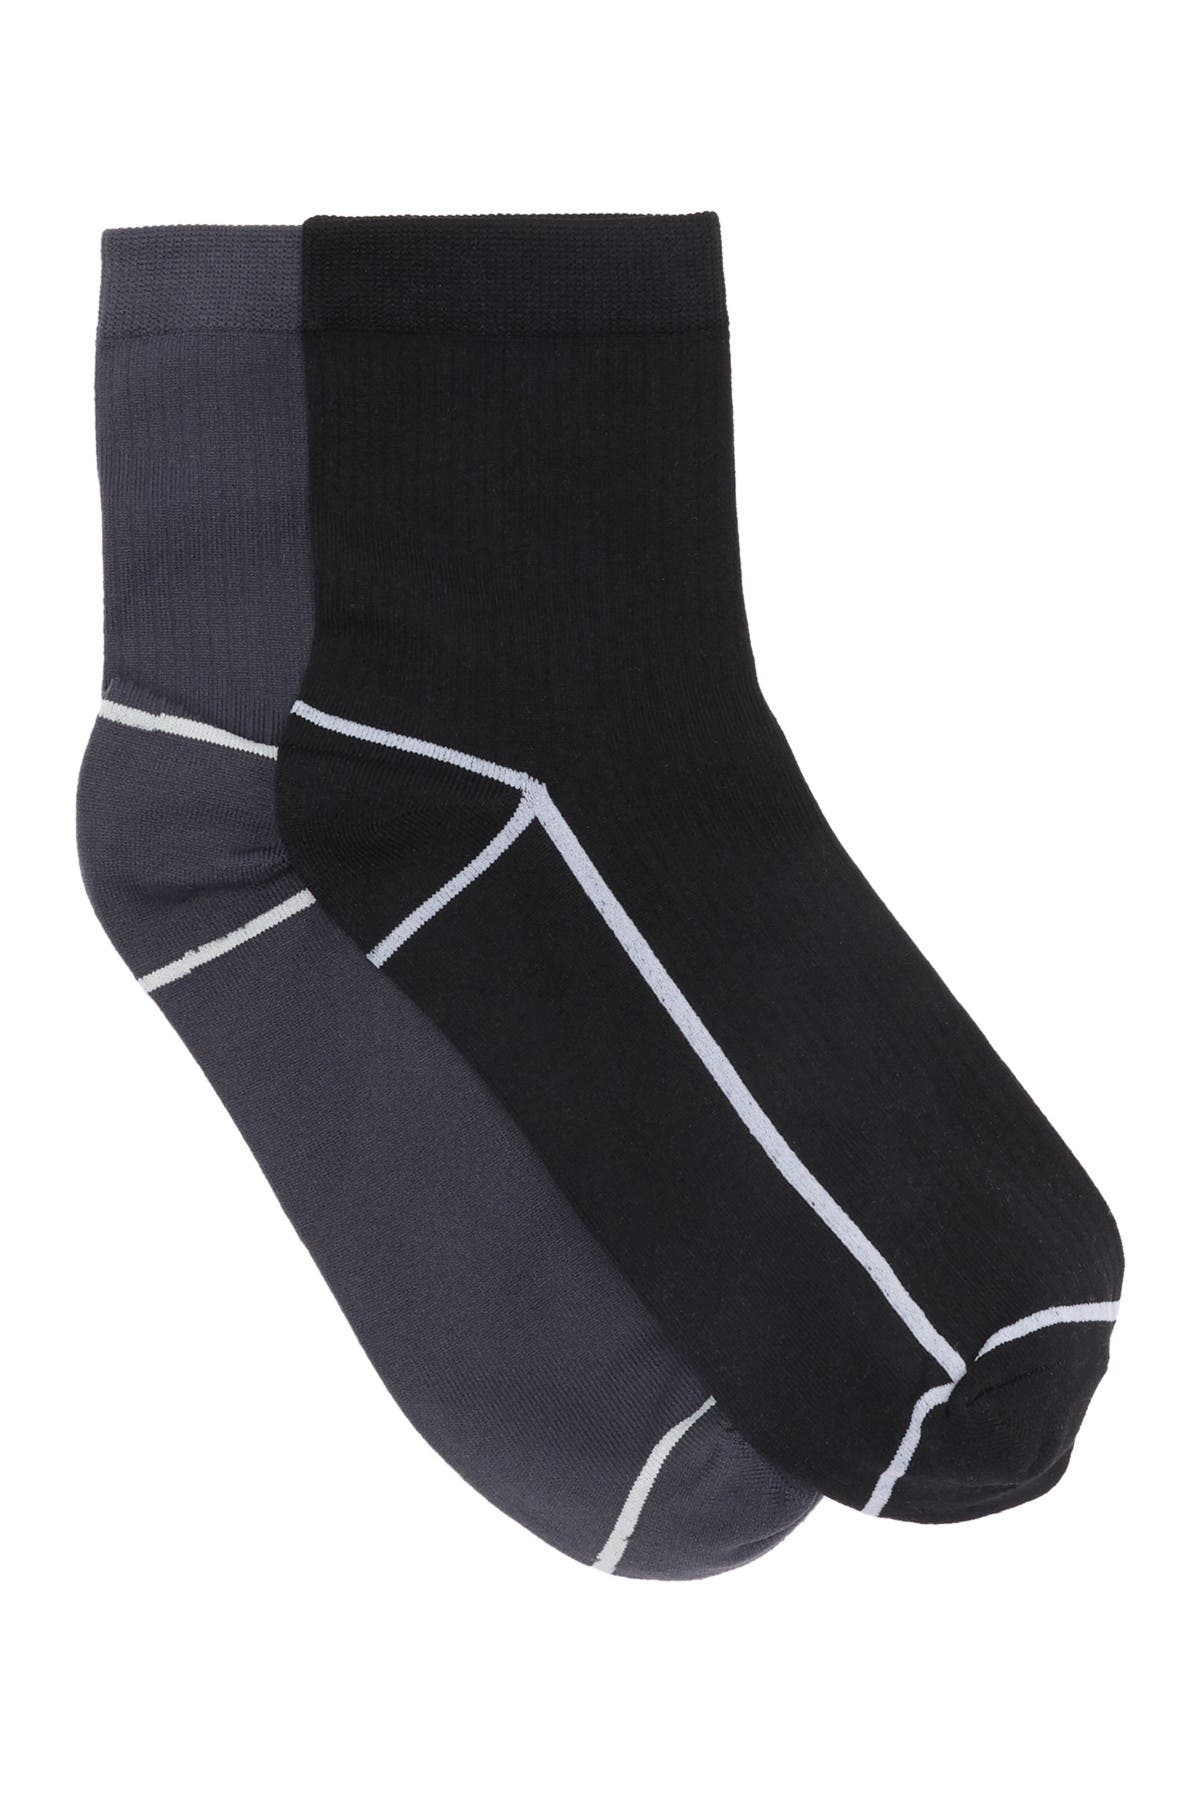 Image of DKNY Quarter Crew Socks - Pack of 2